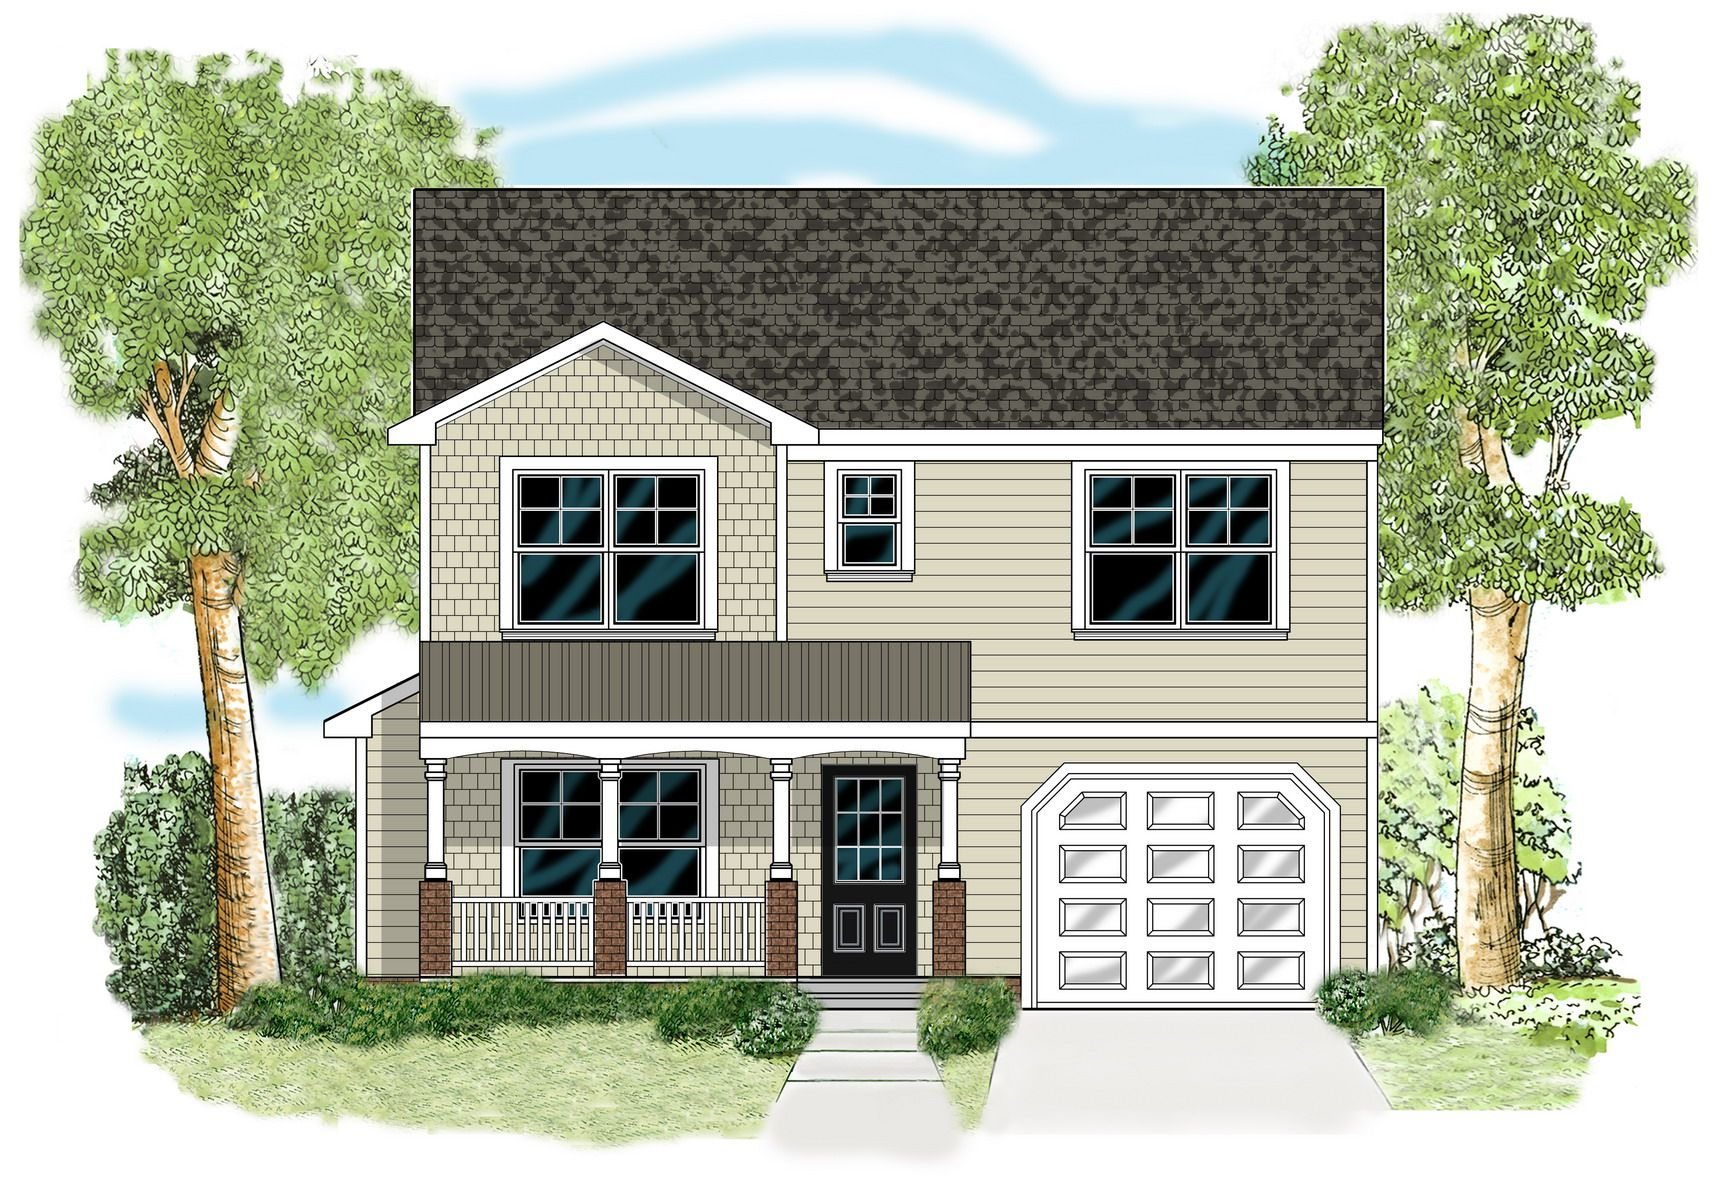 This Two Story Cottage Plan With Country Front Porch Features An